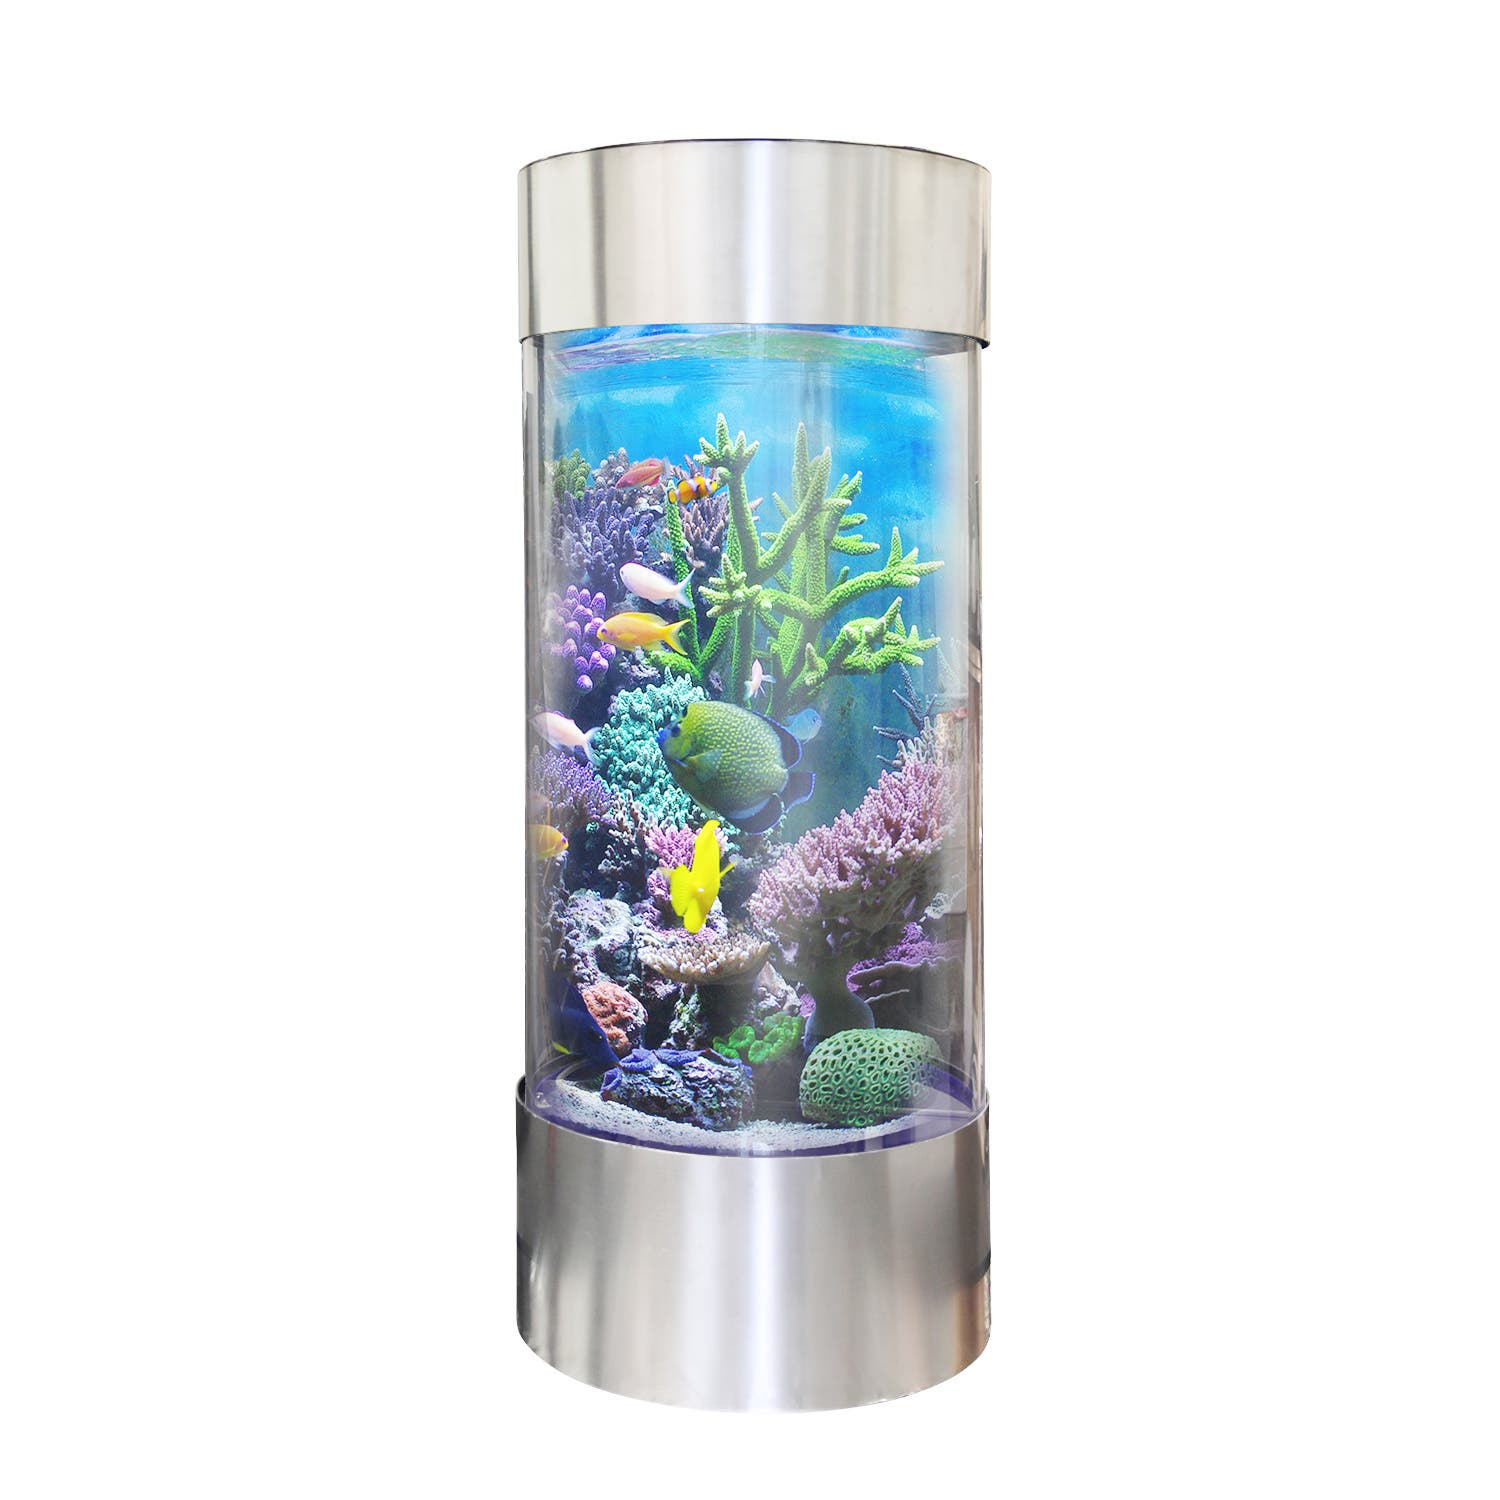 Vapotek 360 Stainless Steel Trim Acrylicand Plastic Cylinder Fish Tank|https://ak1.ostkcdn.com/images/products/P18910224a.jpg?impolicy=medium